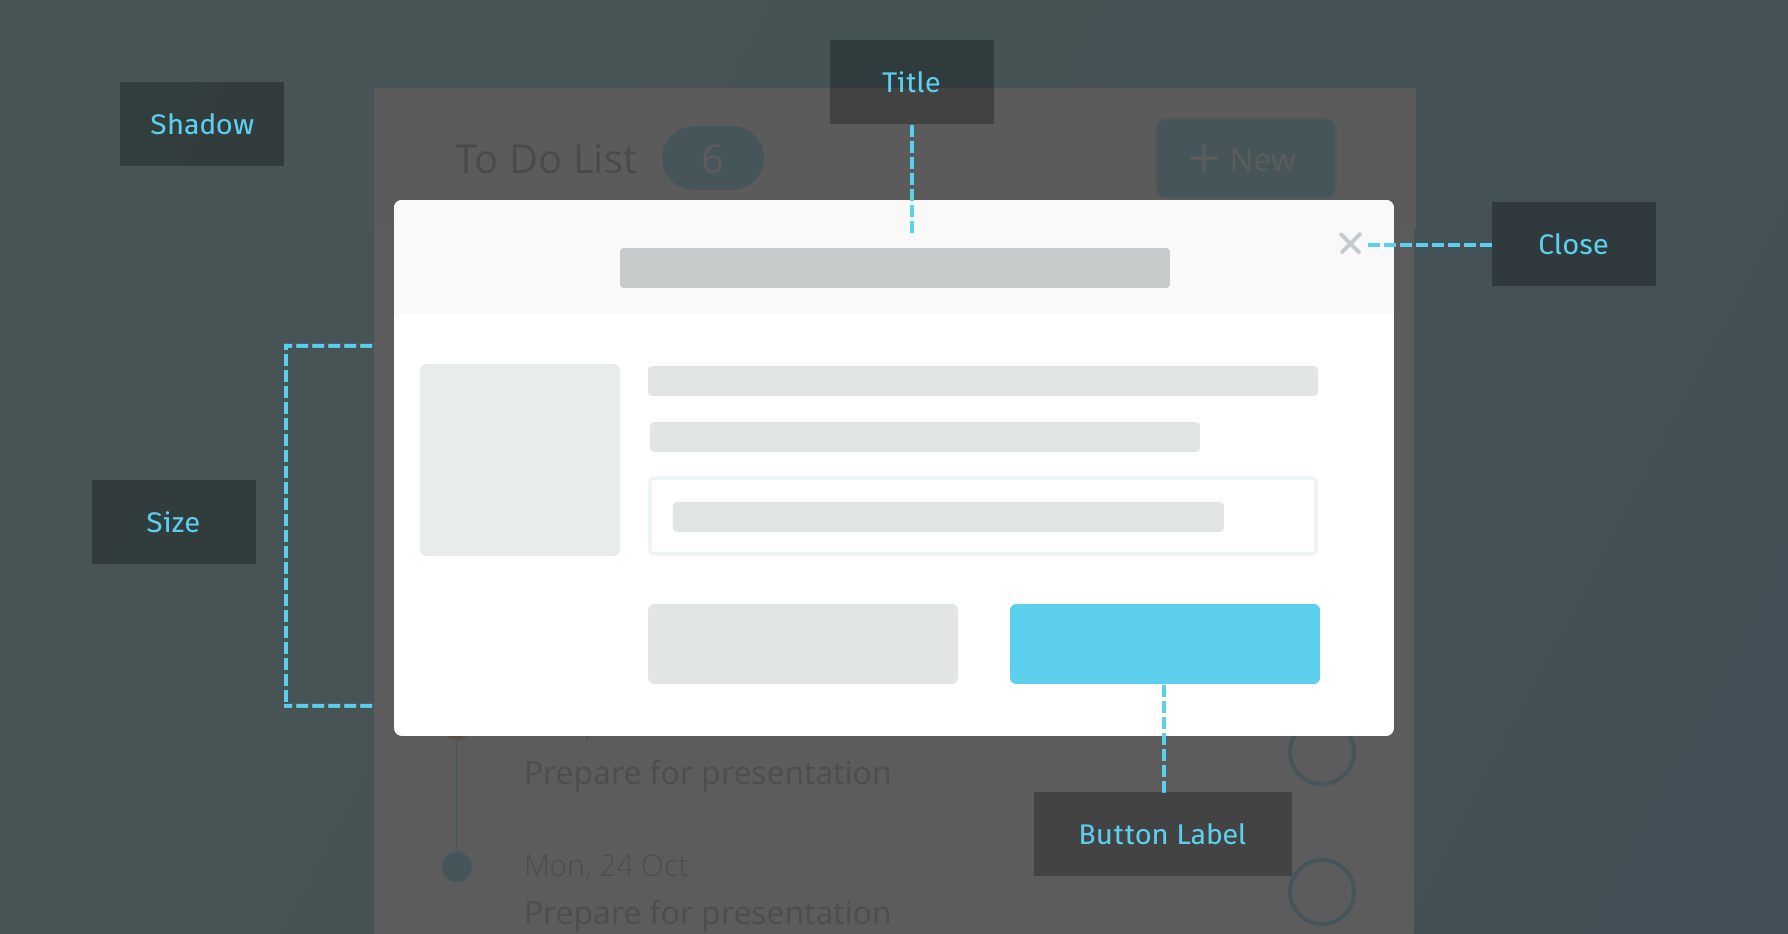 Anatomy of a Modal Window